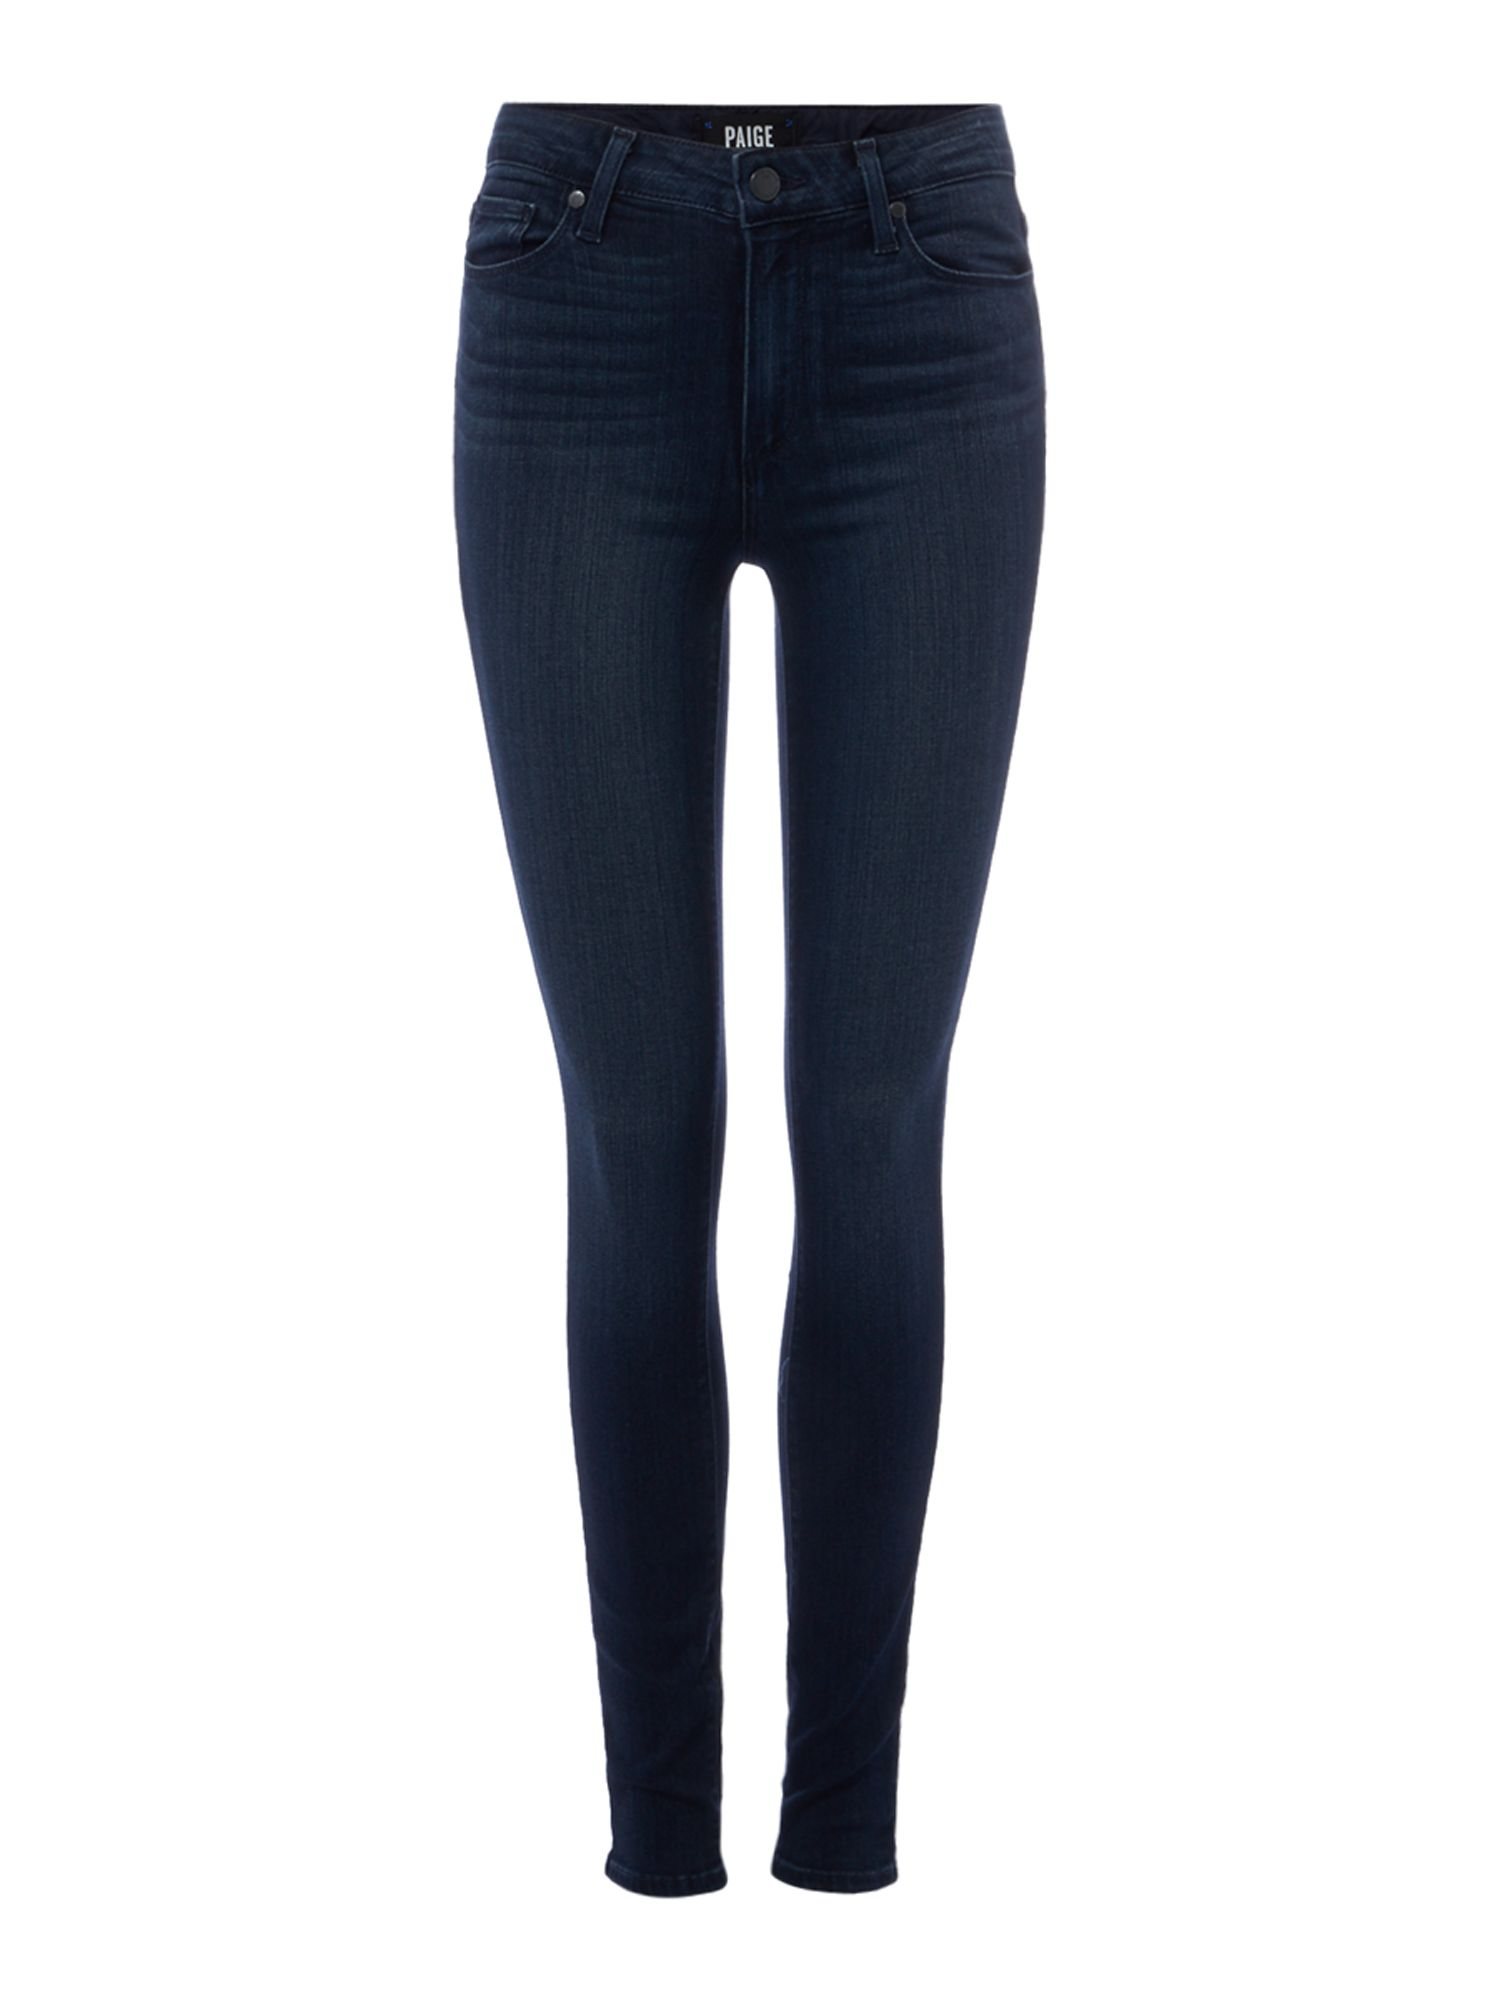 Hoxton Ultra Skinny In Wilson, Denim Dark Wash